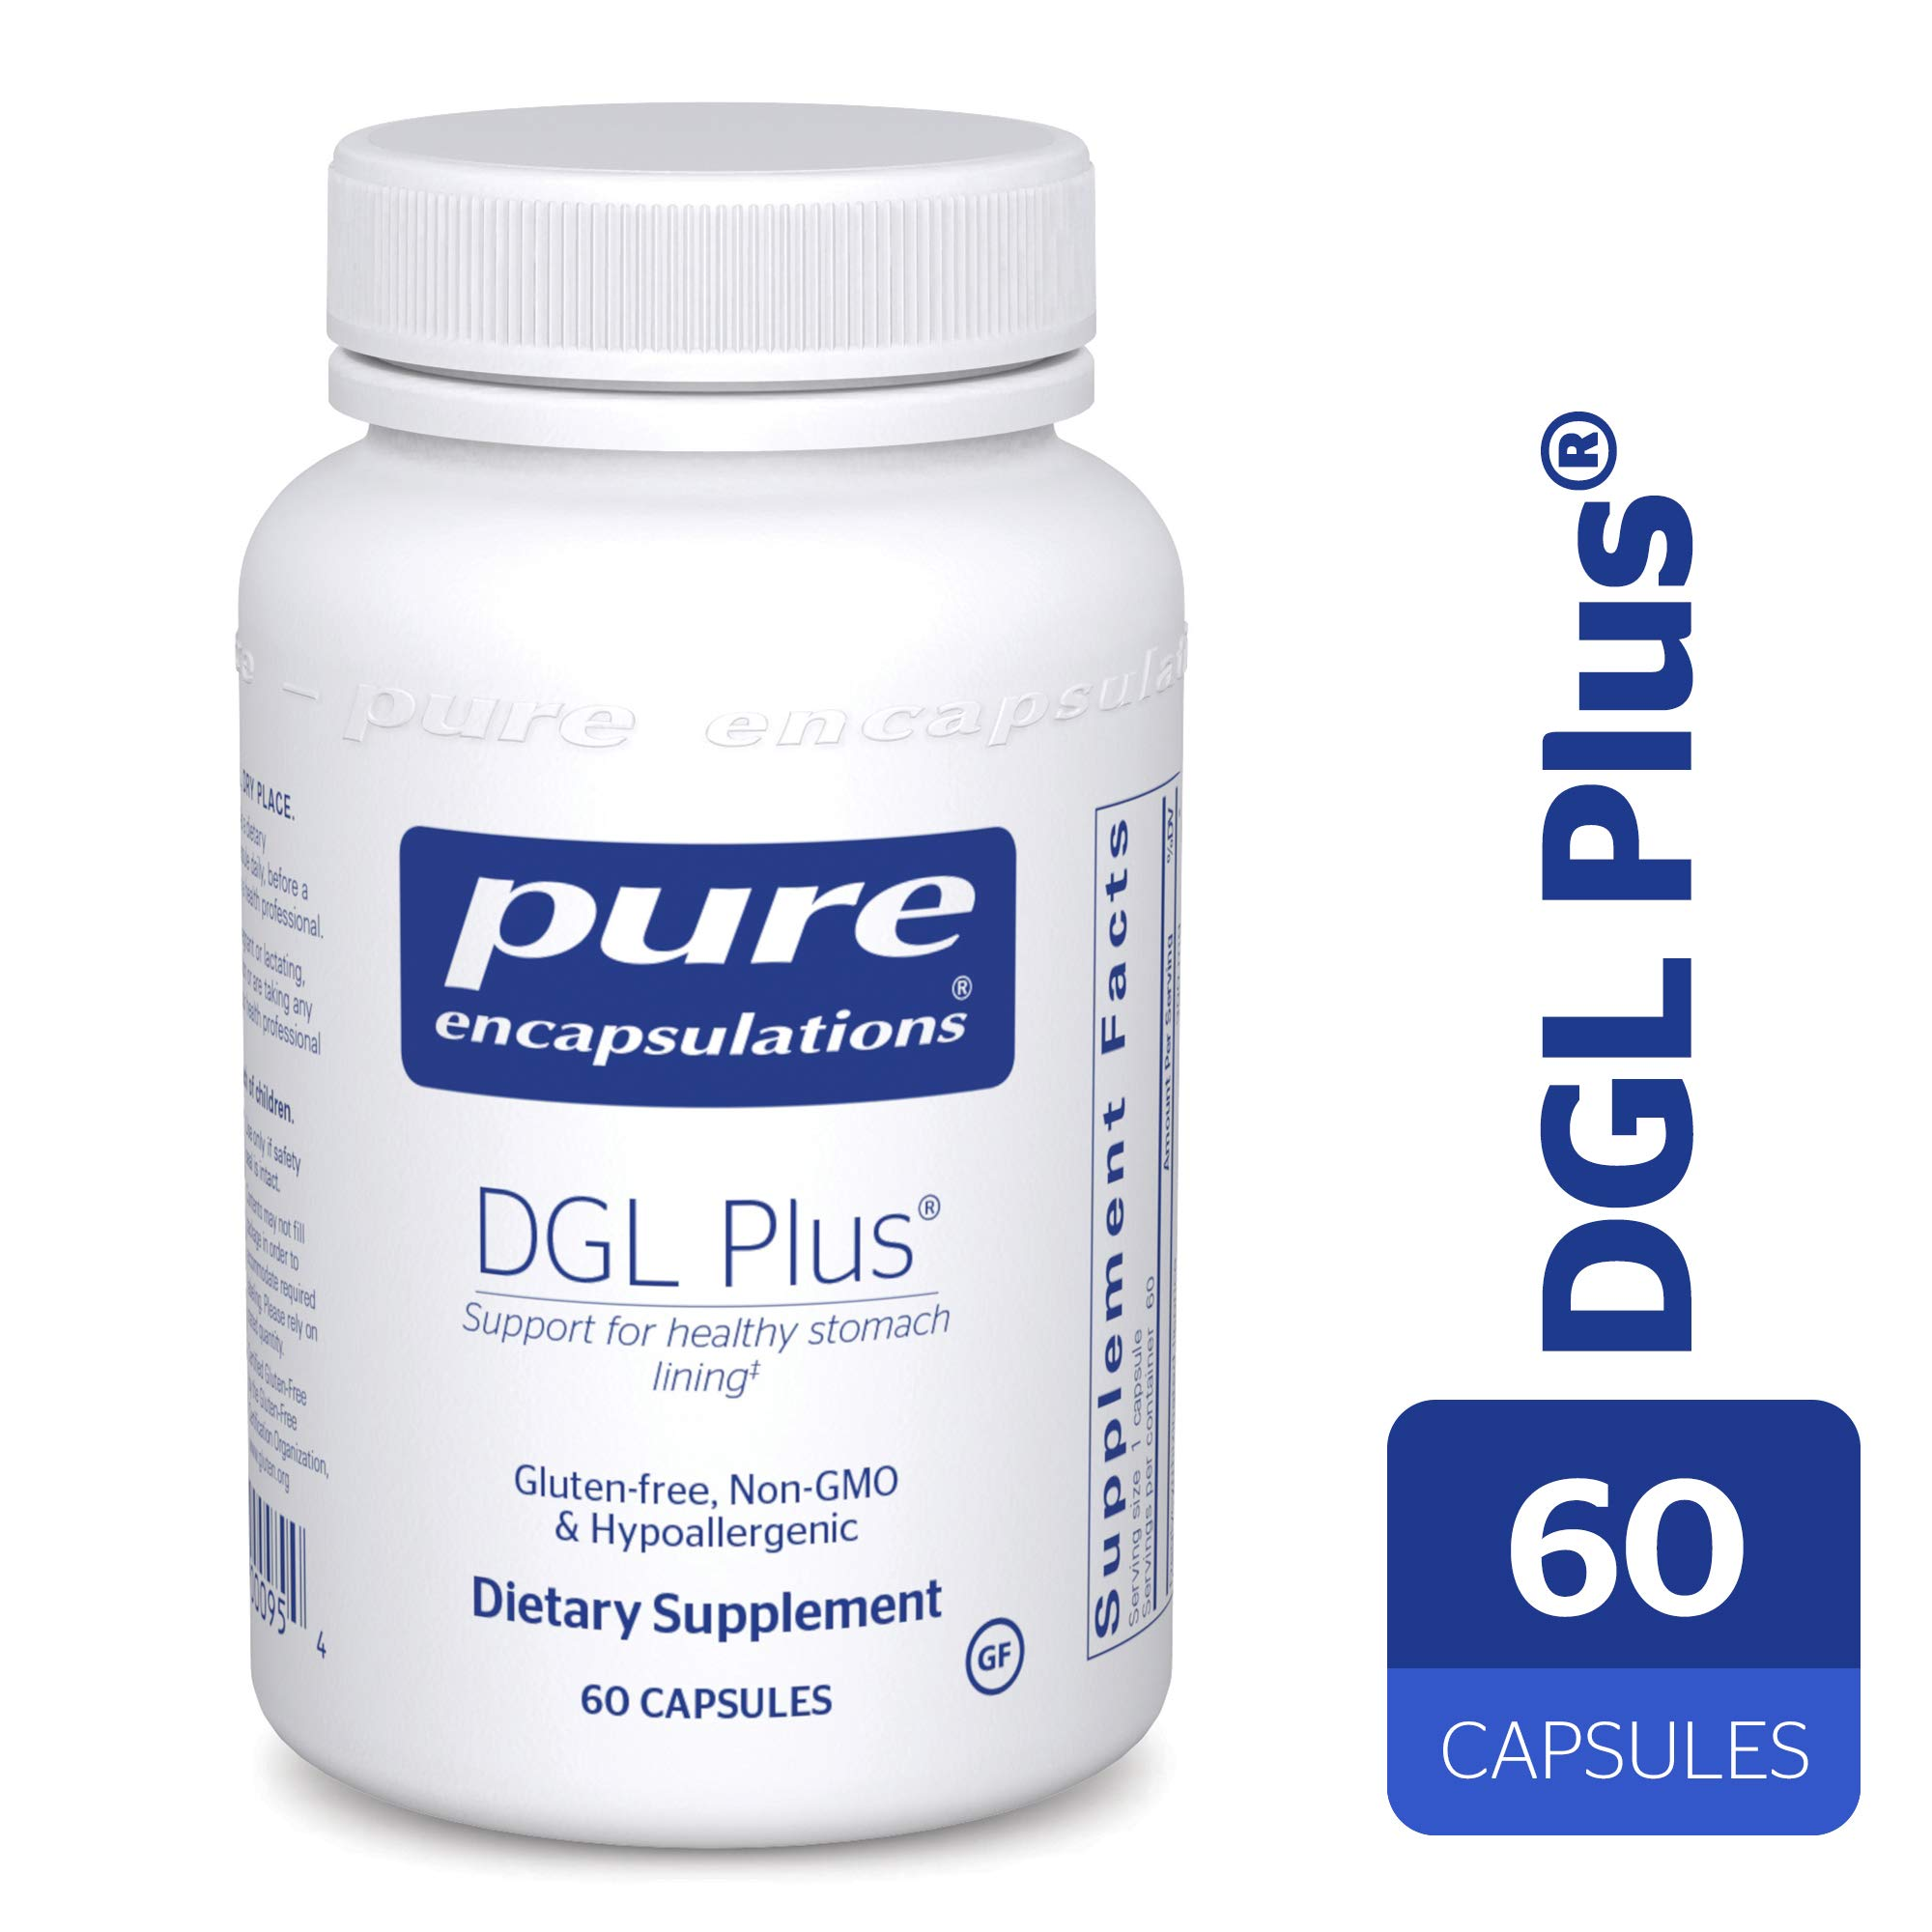 Pure Encapsulations - DGL Plus - Herbal Support for The Gastrointestinal Tract* - 60 Capsules by Pure Encapsulations